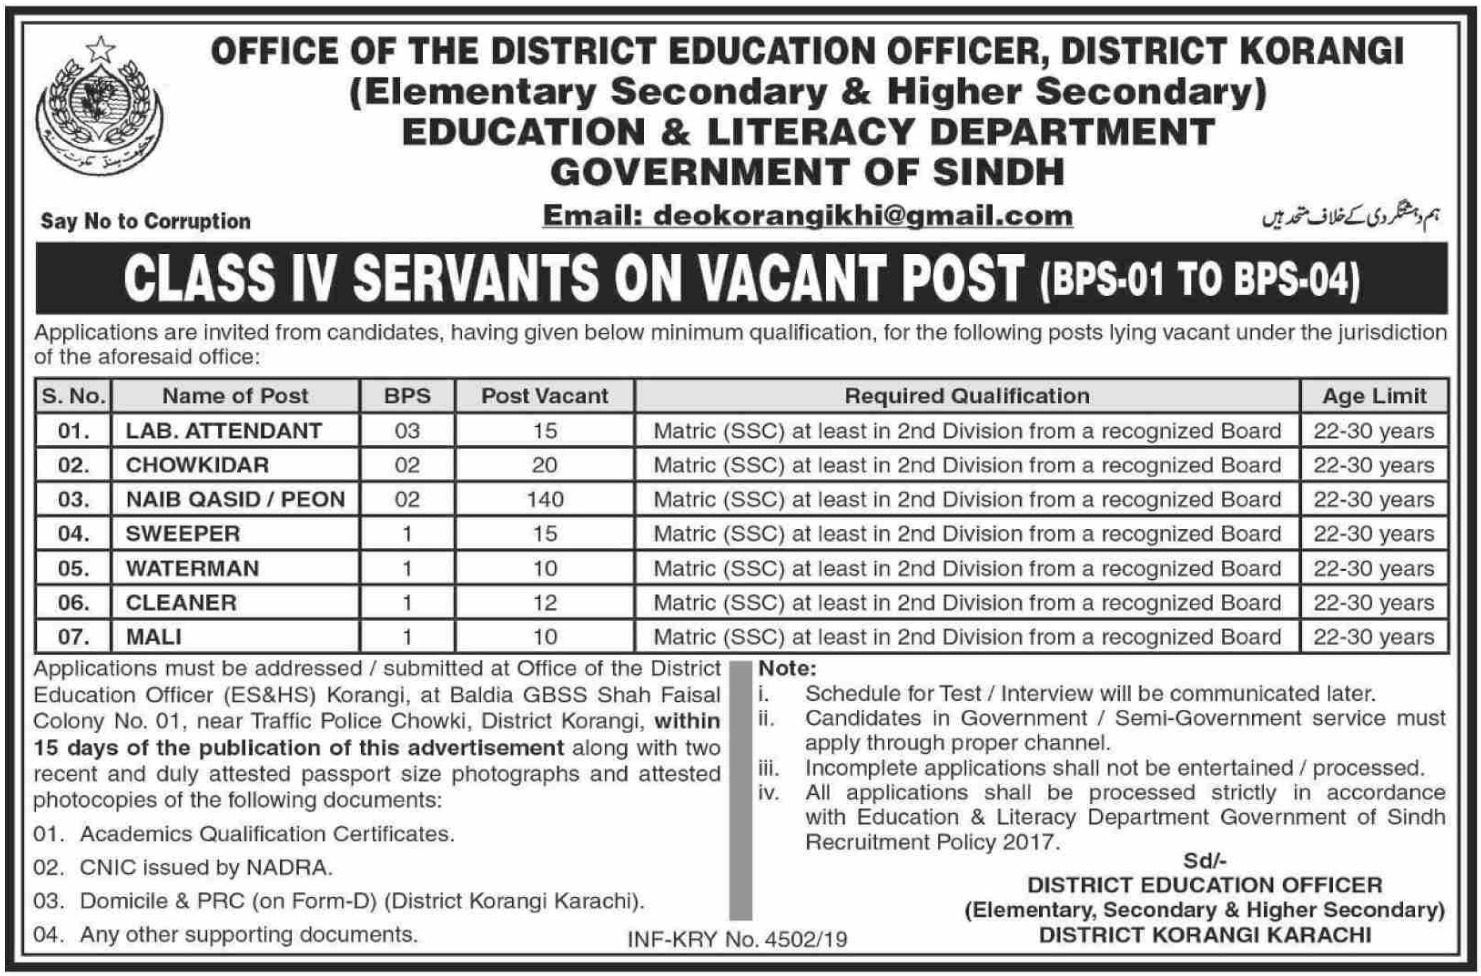 Education & Literacy Department Government of Sindh Jobs 2019 Korangi